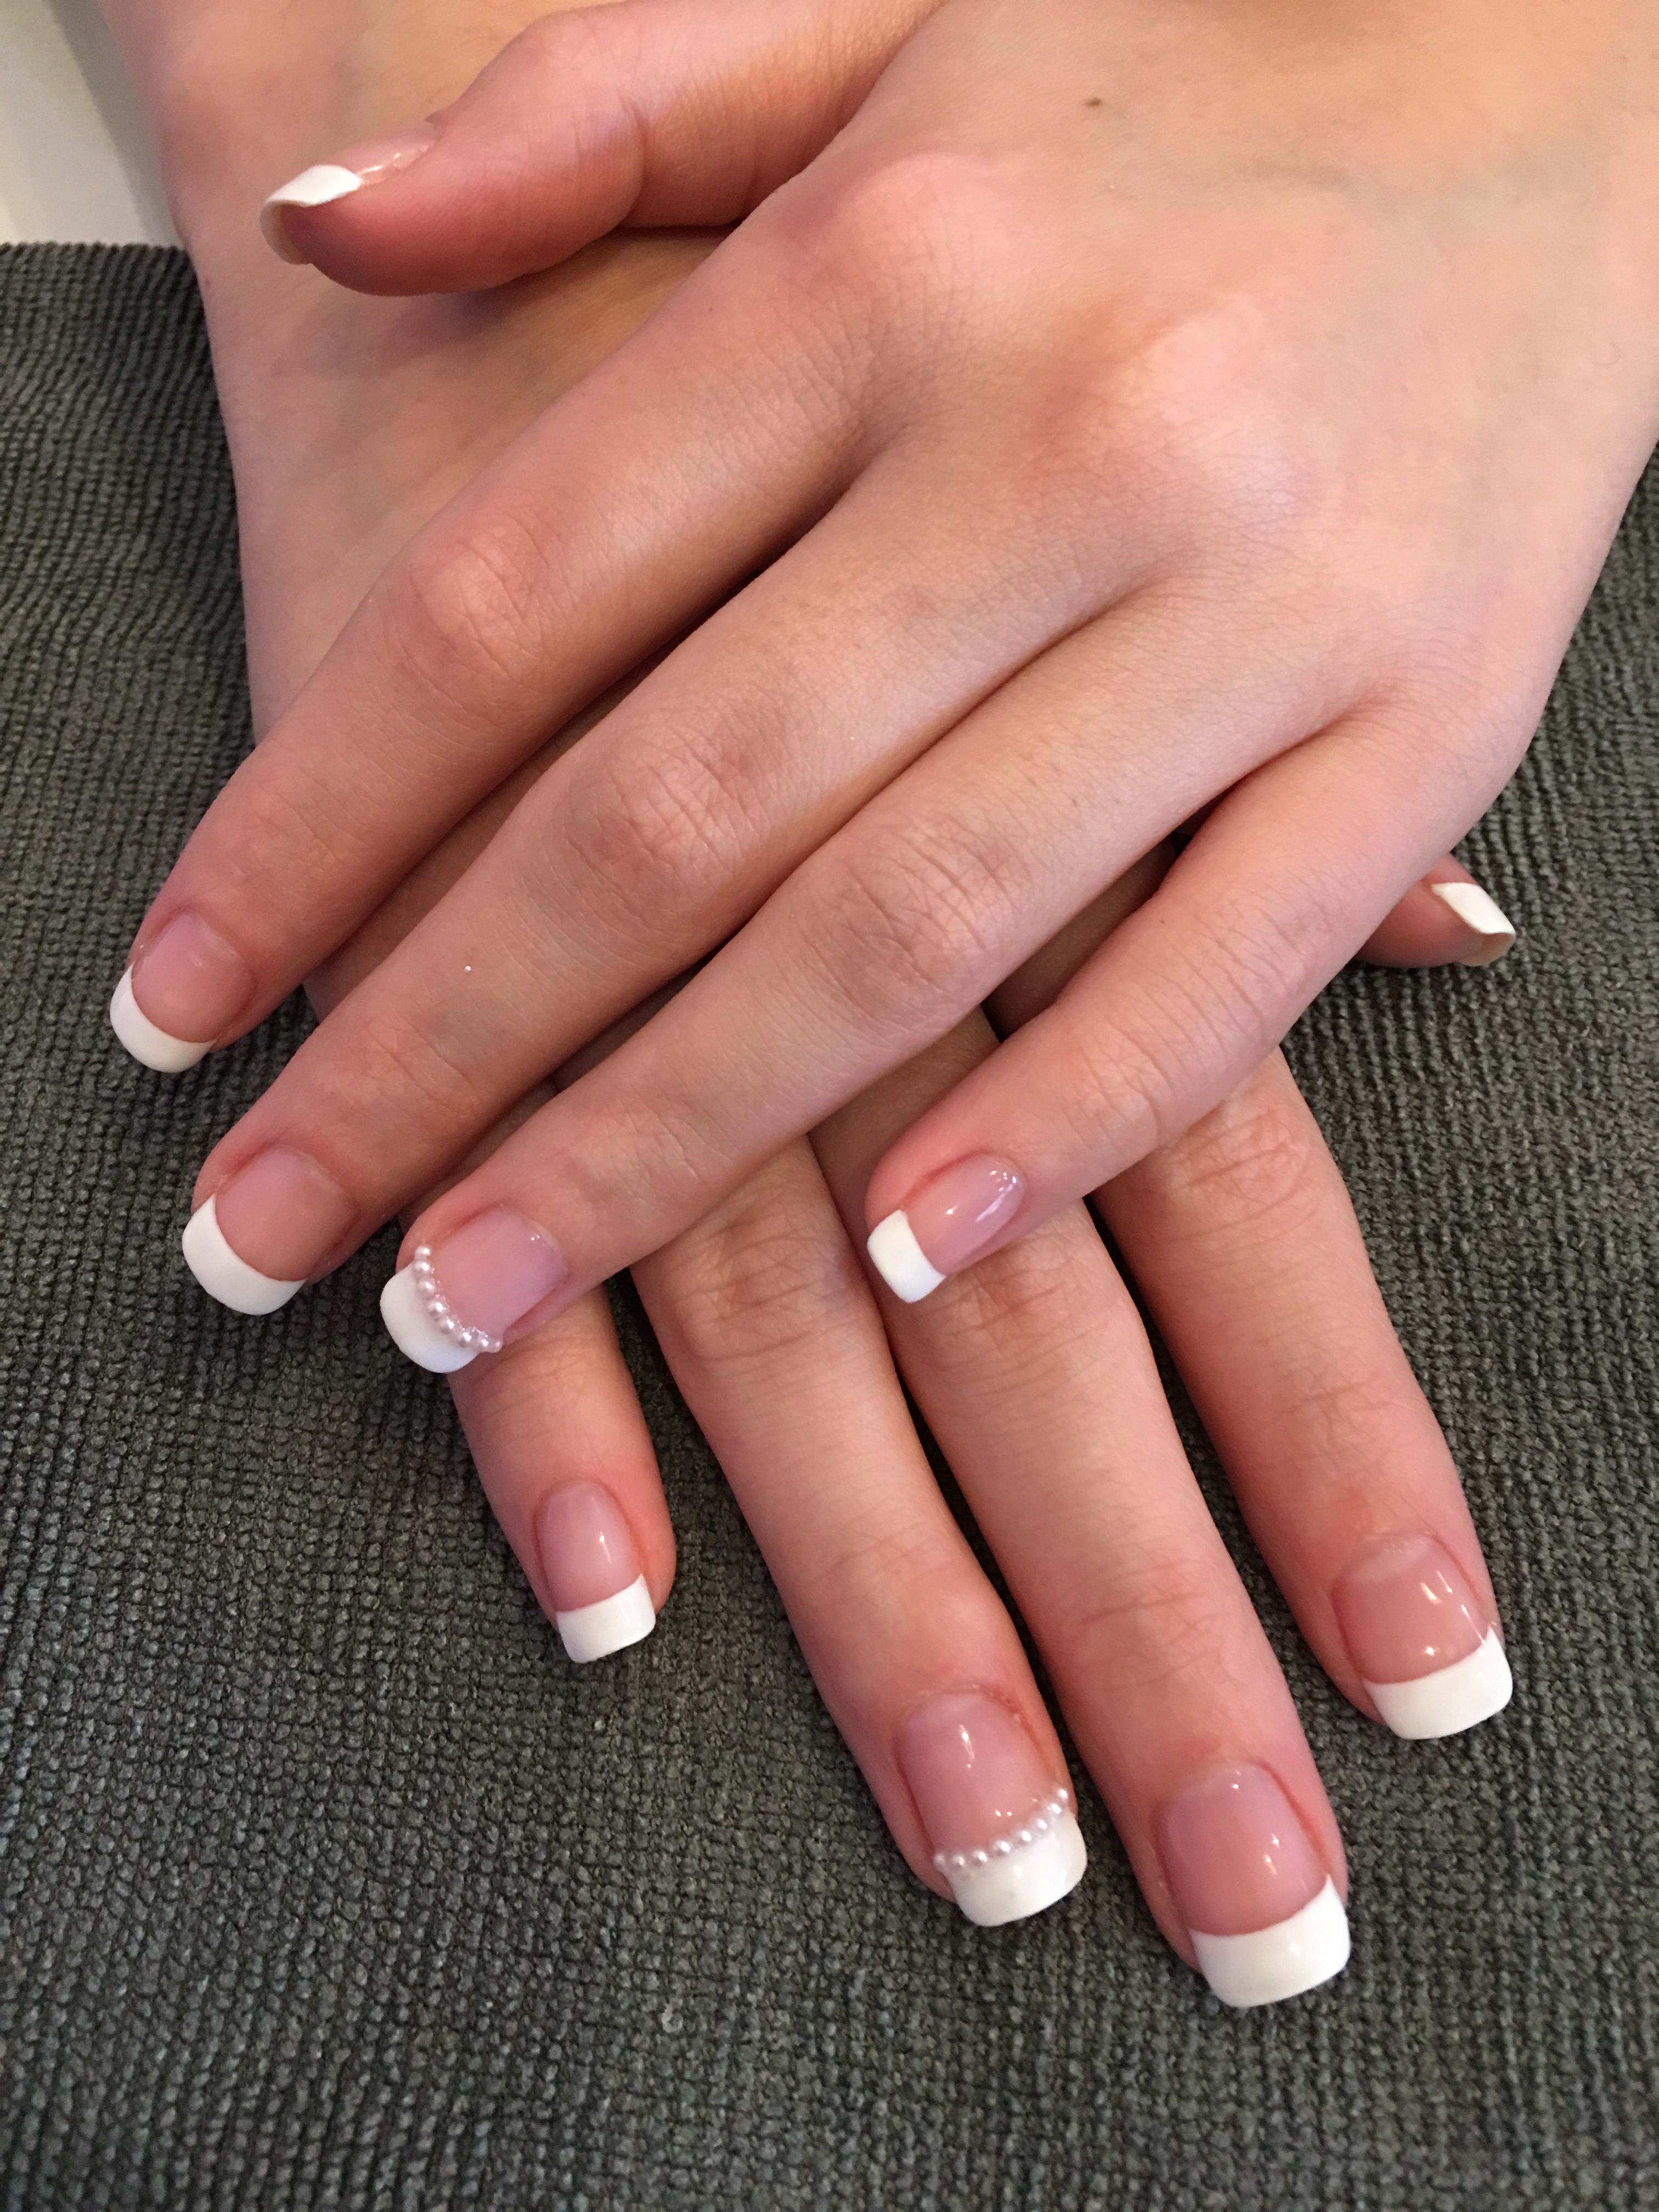 French Gel Manicure On Natural Nails Gel Manicure Natural Nails Manicure